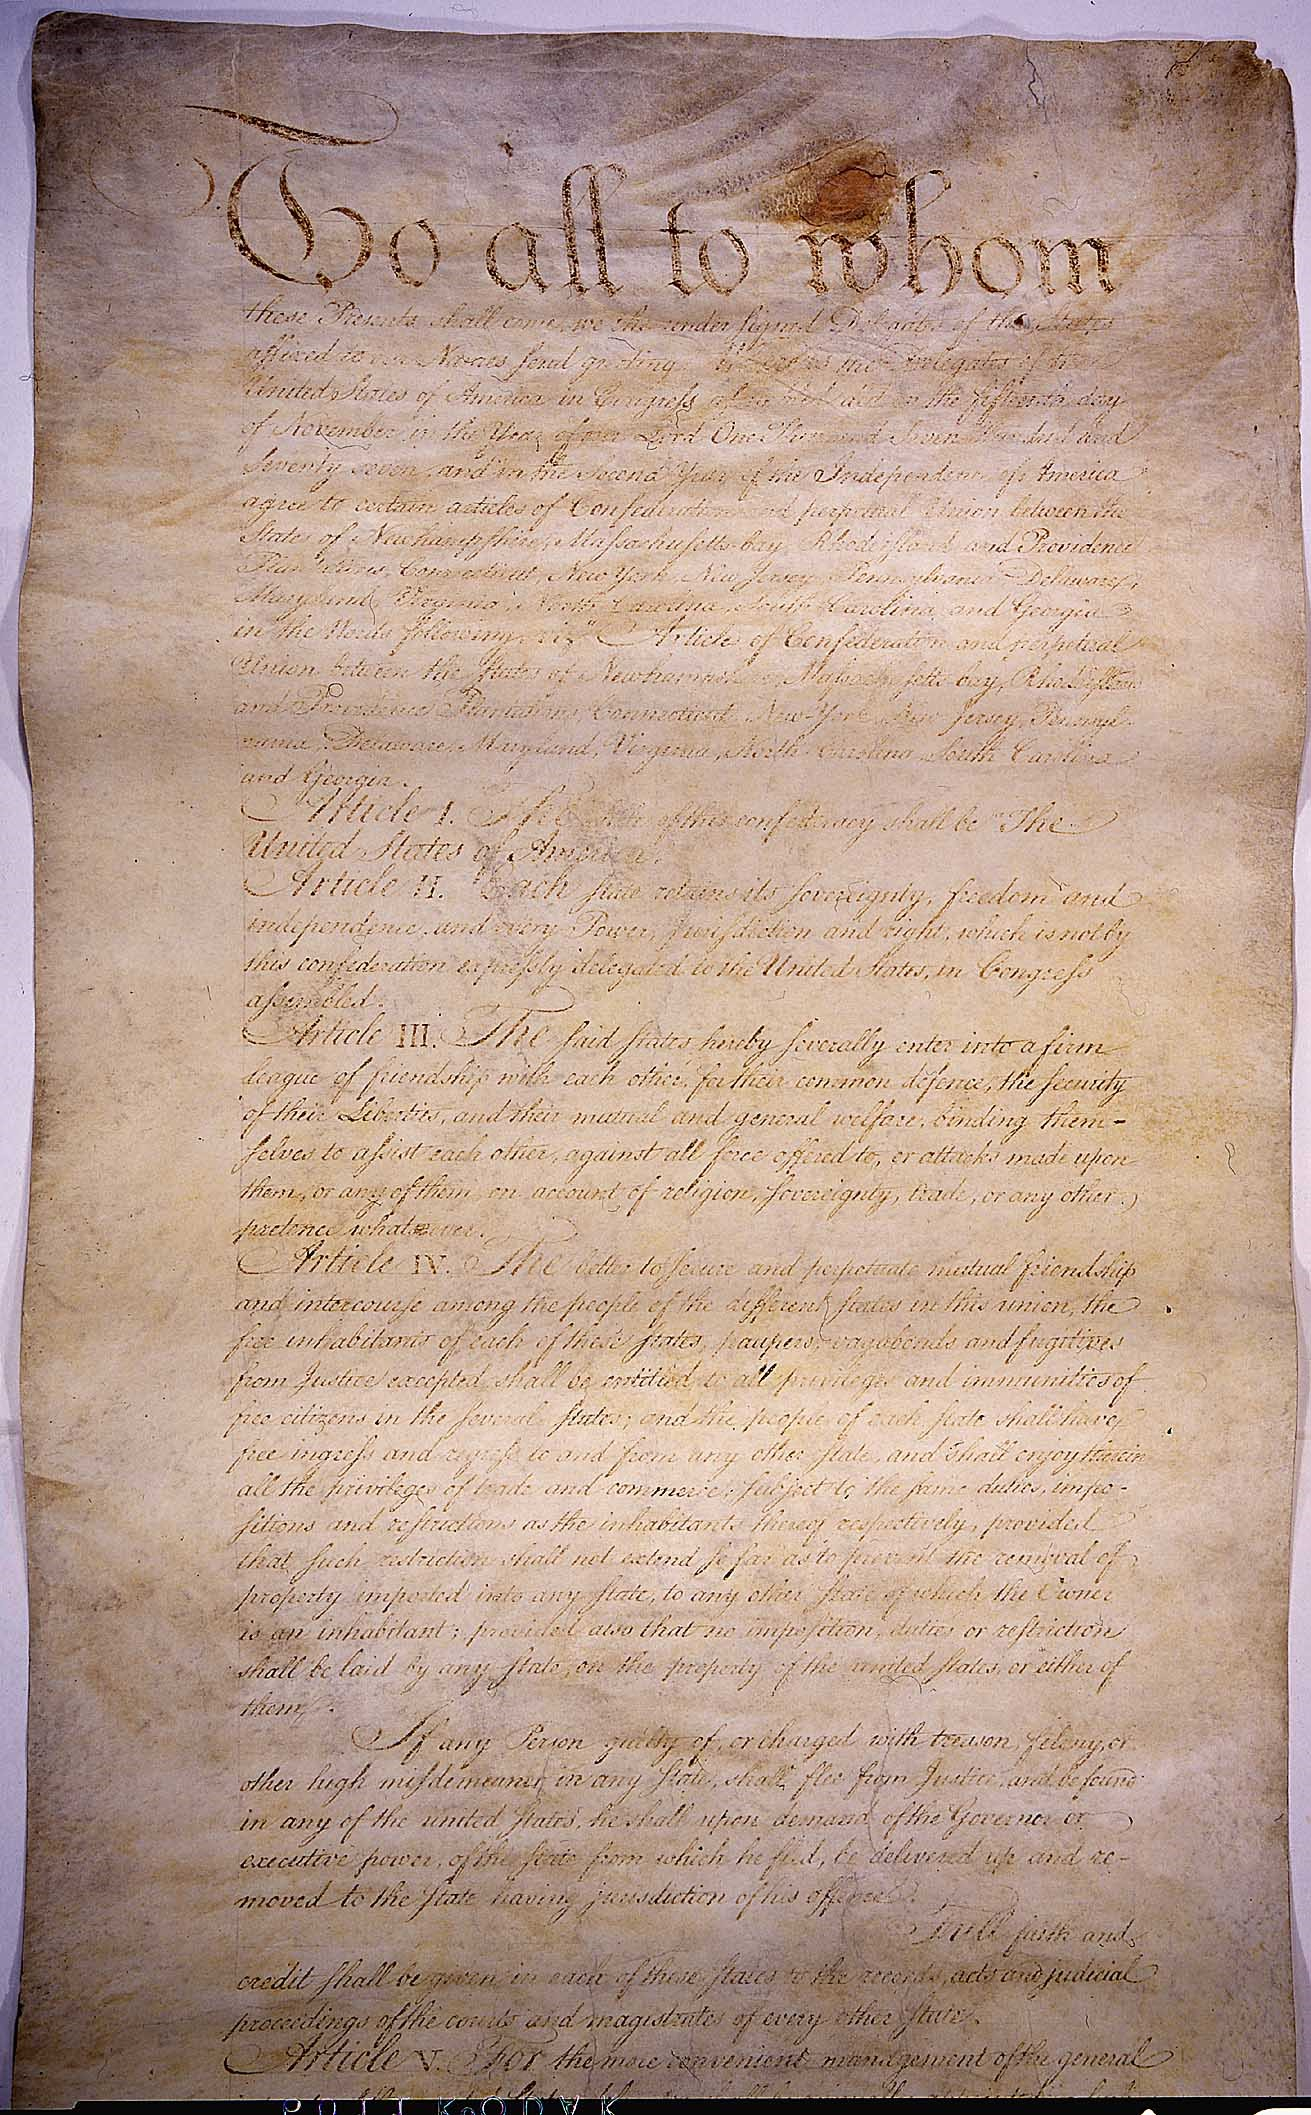 The first page of the Articles of Confederation.